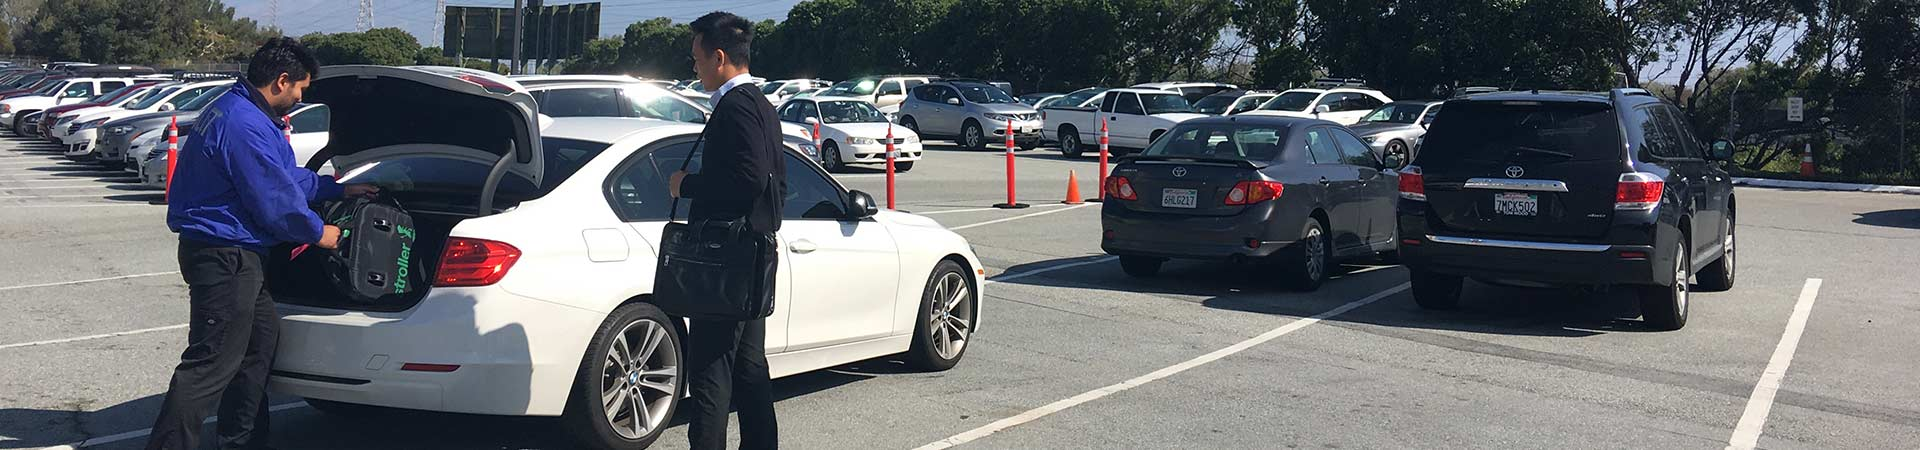 Valet Service at Anza Parking